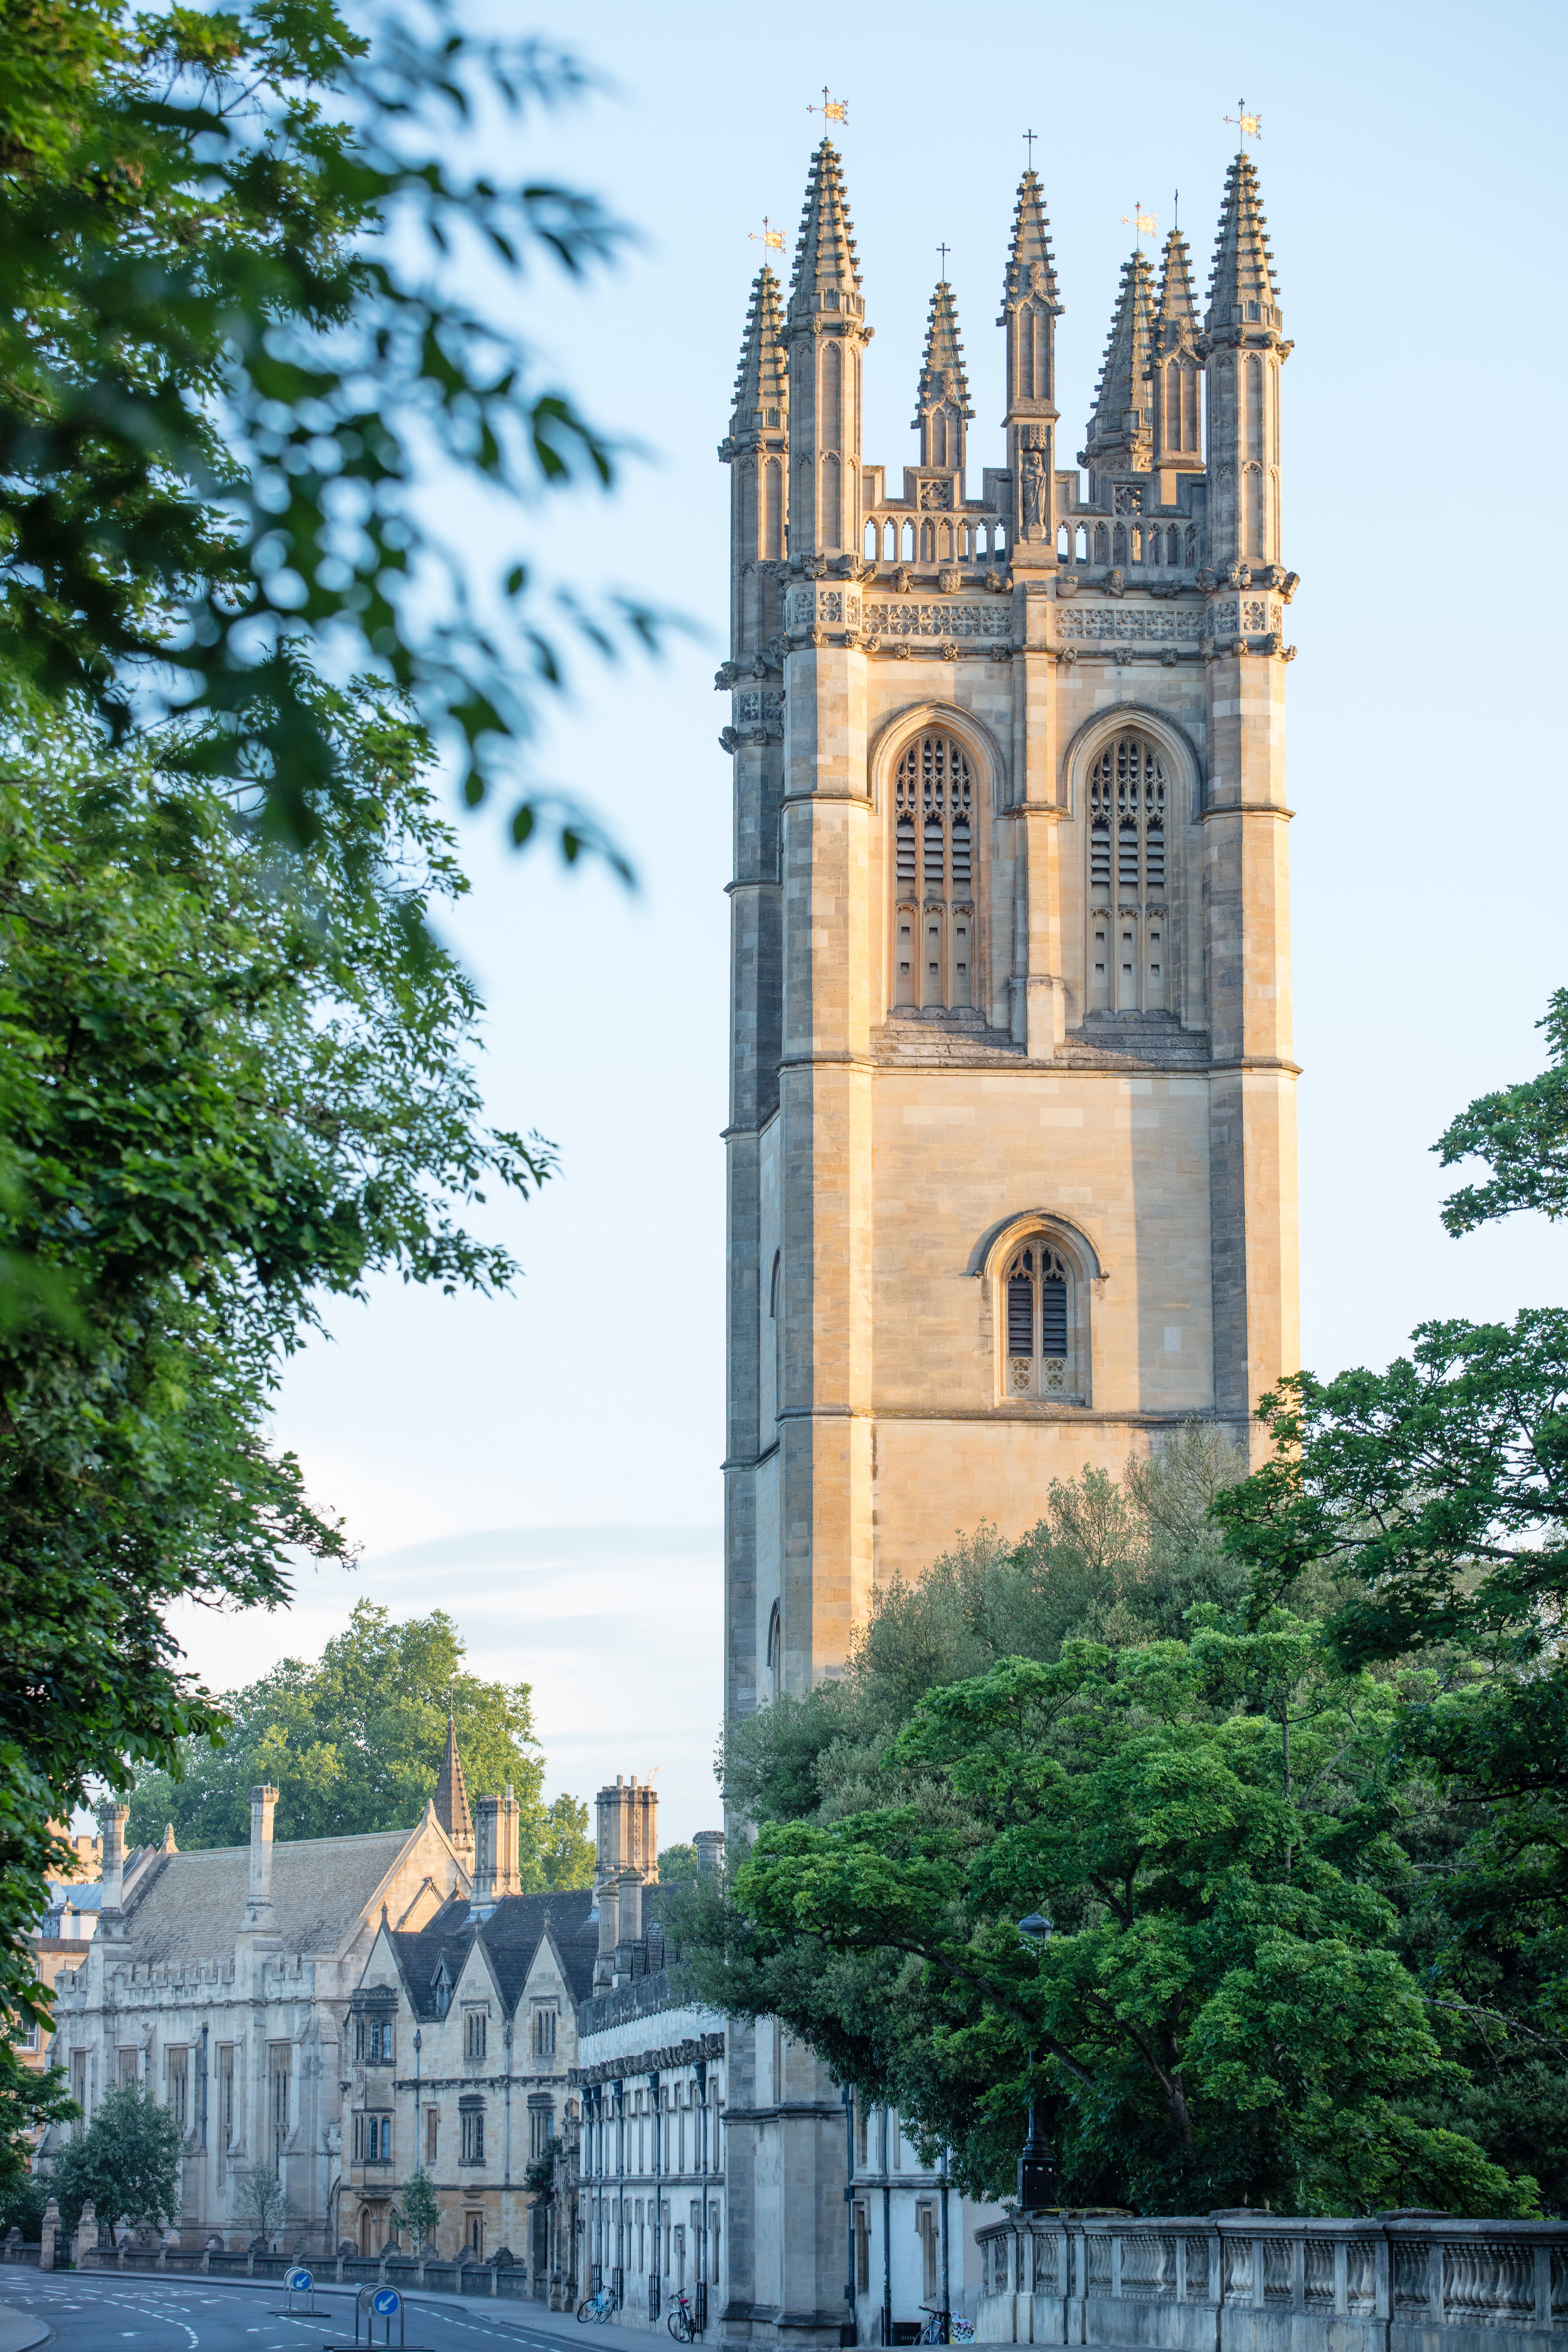 Magdalen tower in the morning light